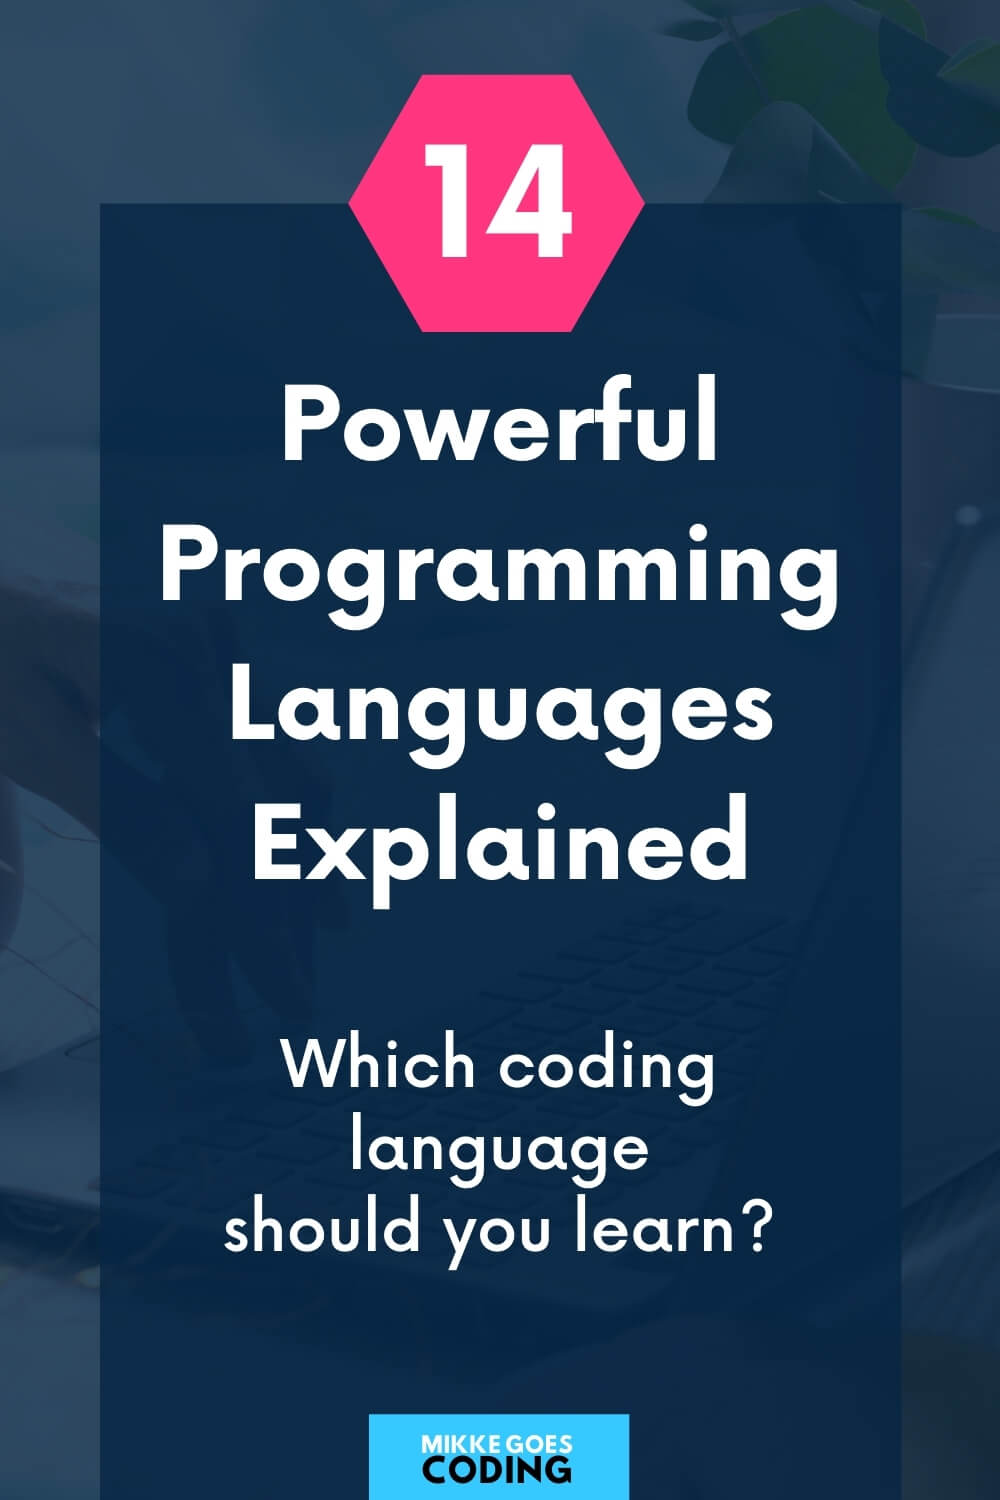 Popular programming languages and their uses explained - MikkeGoes 01